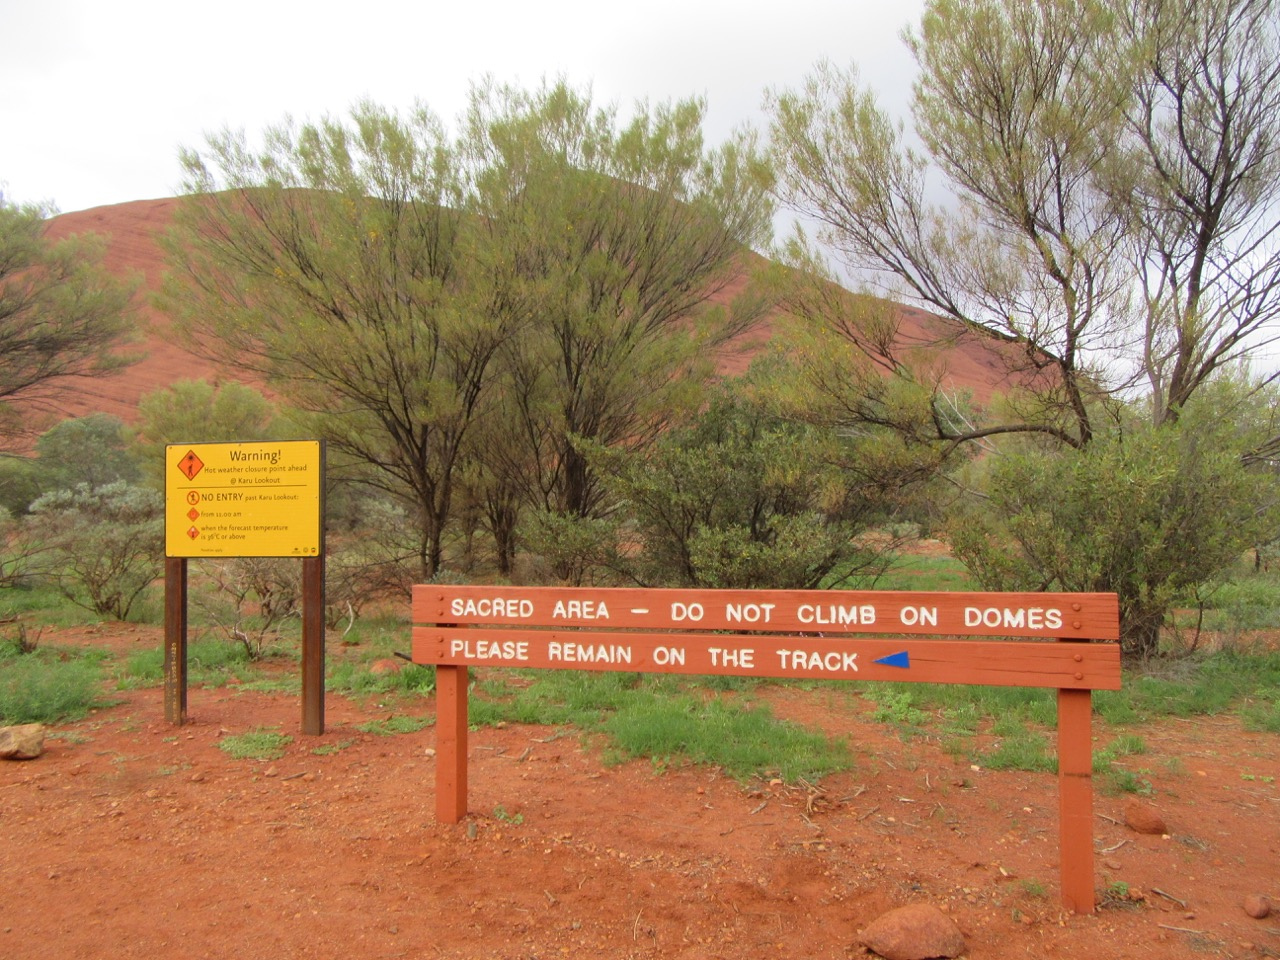 It's interesting that climbing is forbidden here, yet optional at Uluru.